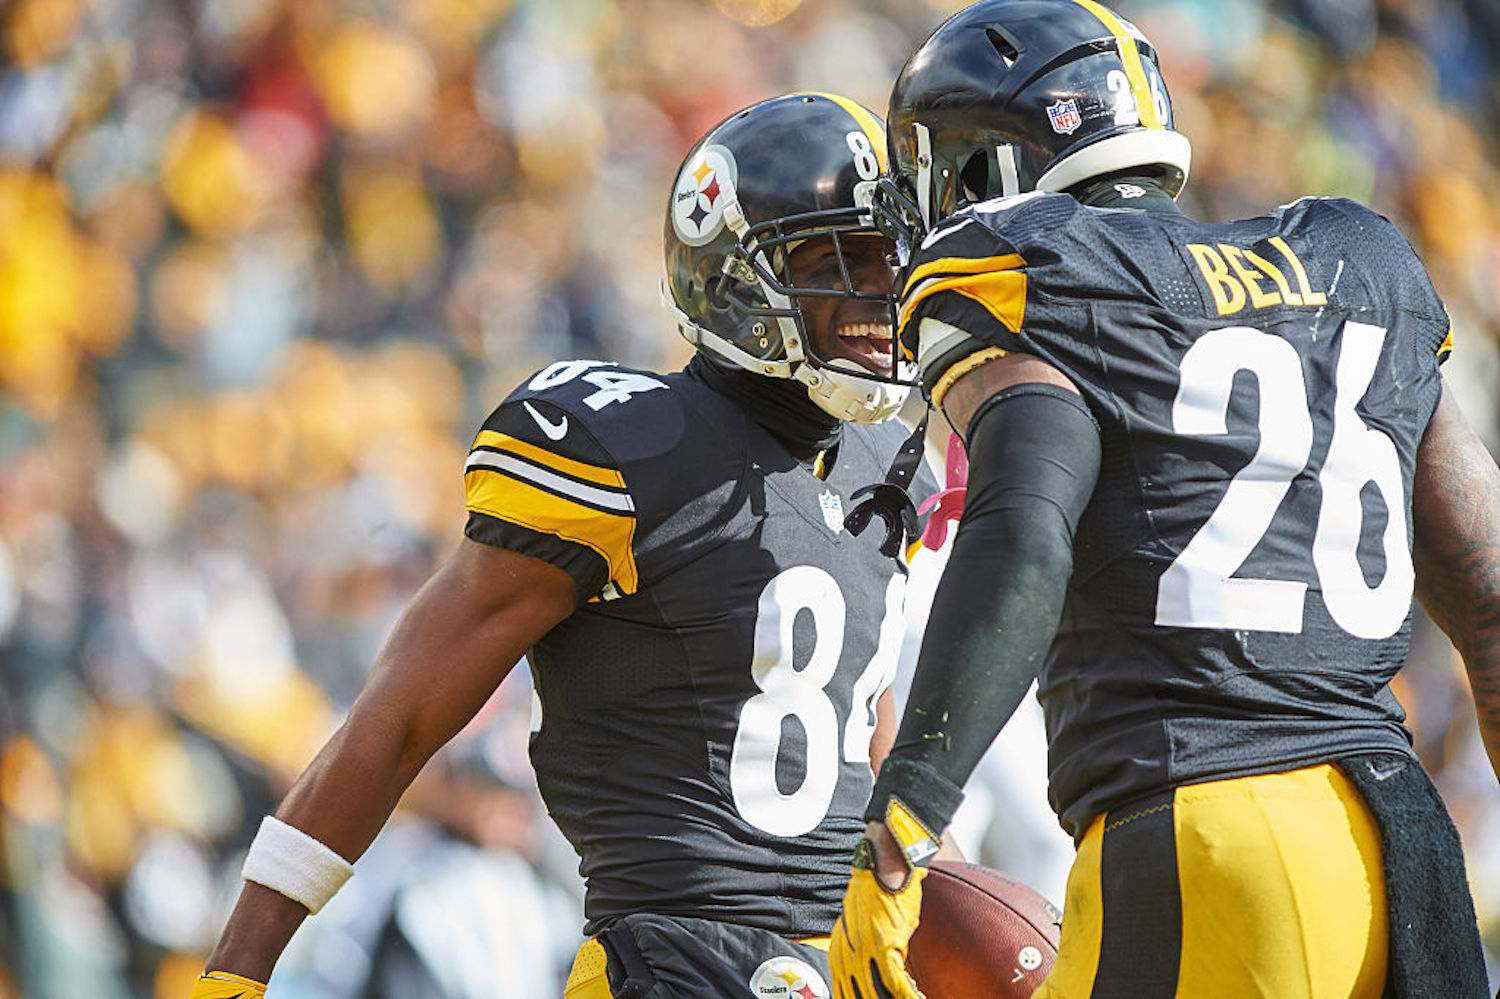 The Meteoric Rise and Drastic Fall of Le'Veon Bell and Antonio Brown